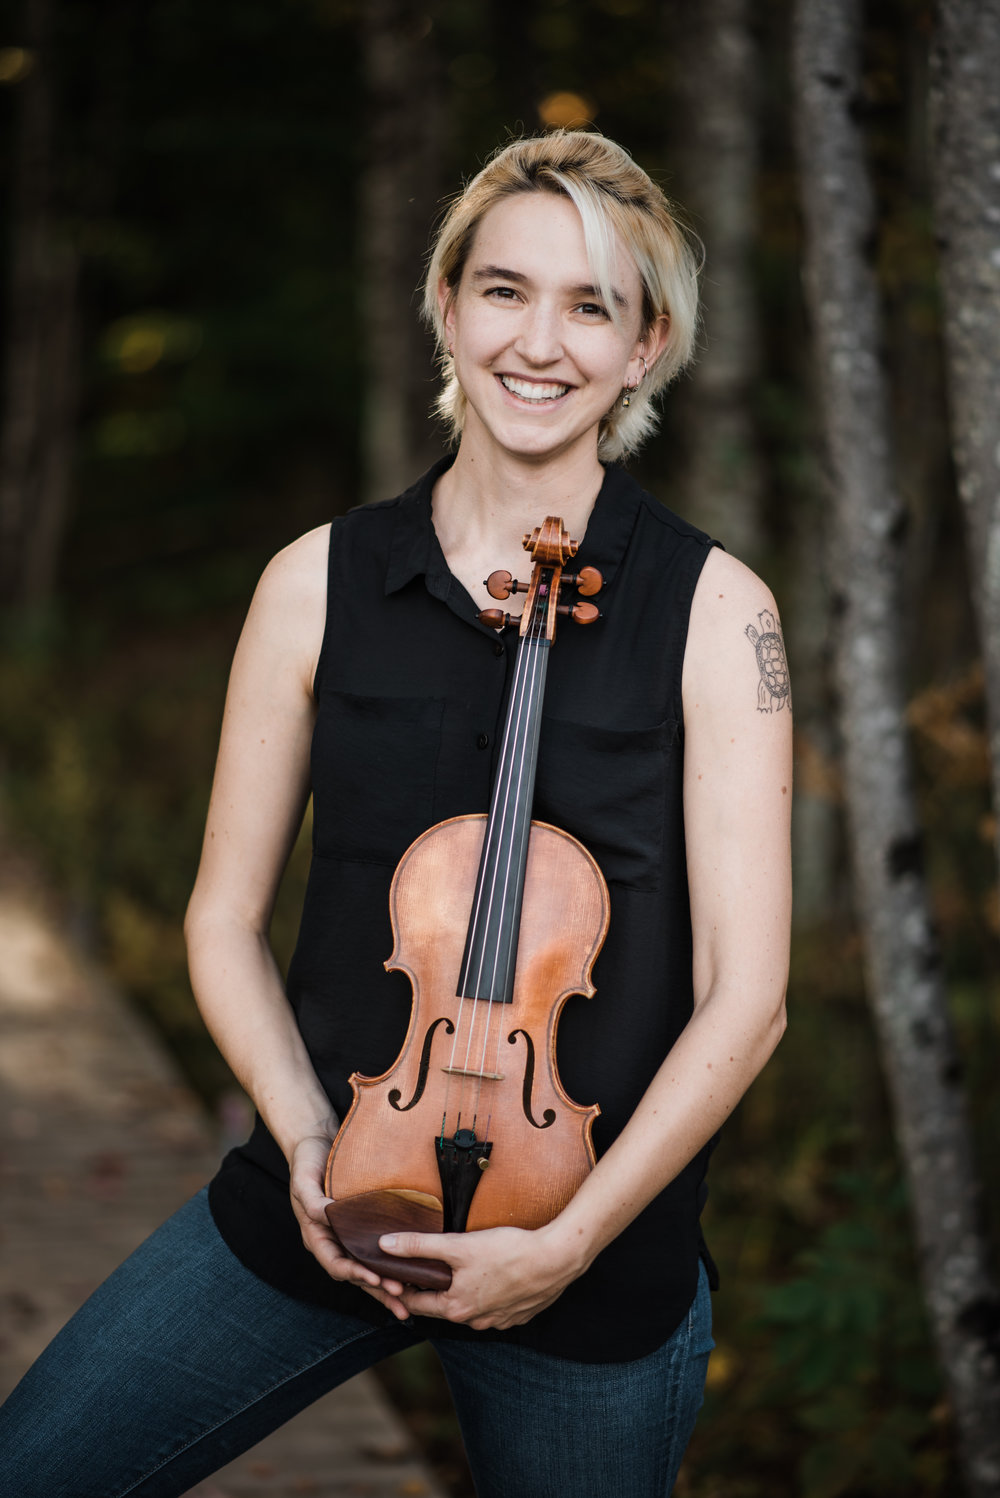 Myra Hinrichs - Myra Hinrichs, violinist, is a graduate of Oberlin College and Conservatory and the Civic Orchestra training program. She has spent her summers performing in music festivals including the Barnes Ensemble, Finger Lakes Opera, Aspen Music Festival, and Spoleto USA. She is a member of Chartreuse, an ensemble devoted to performing contemporary music from around the world. She appears with other Chicago ensembles including the Morton Feldman Chamber Players, and Mocrep. She is always up for trying new kinds of music and has played shows with indy bands, folk singers, and free improvisers. In addition to performing, she teaches private lessons in the Chicago area.